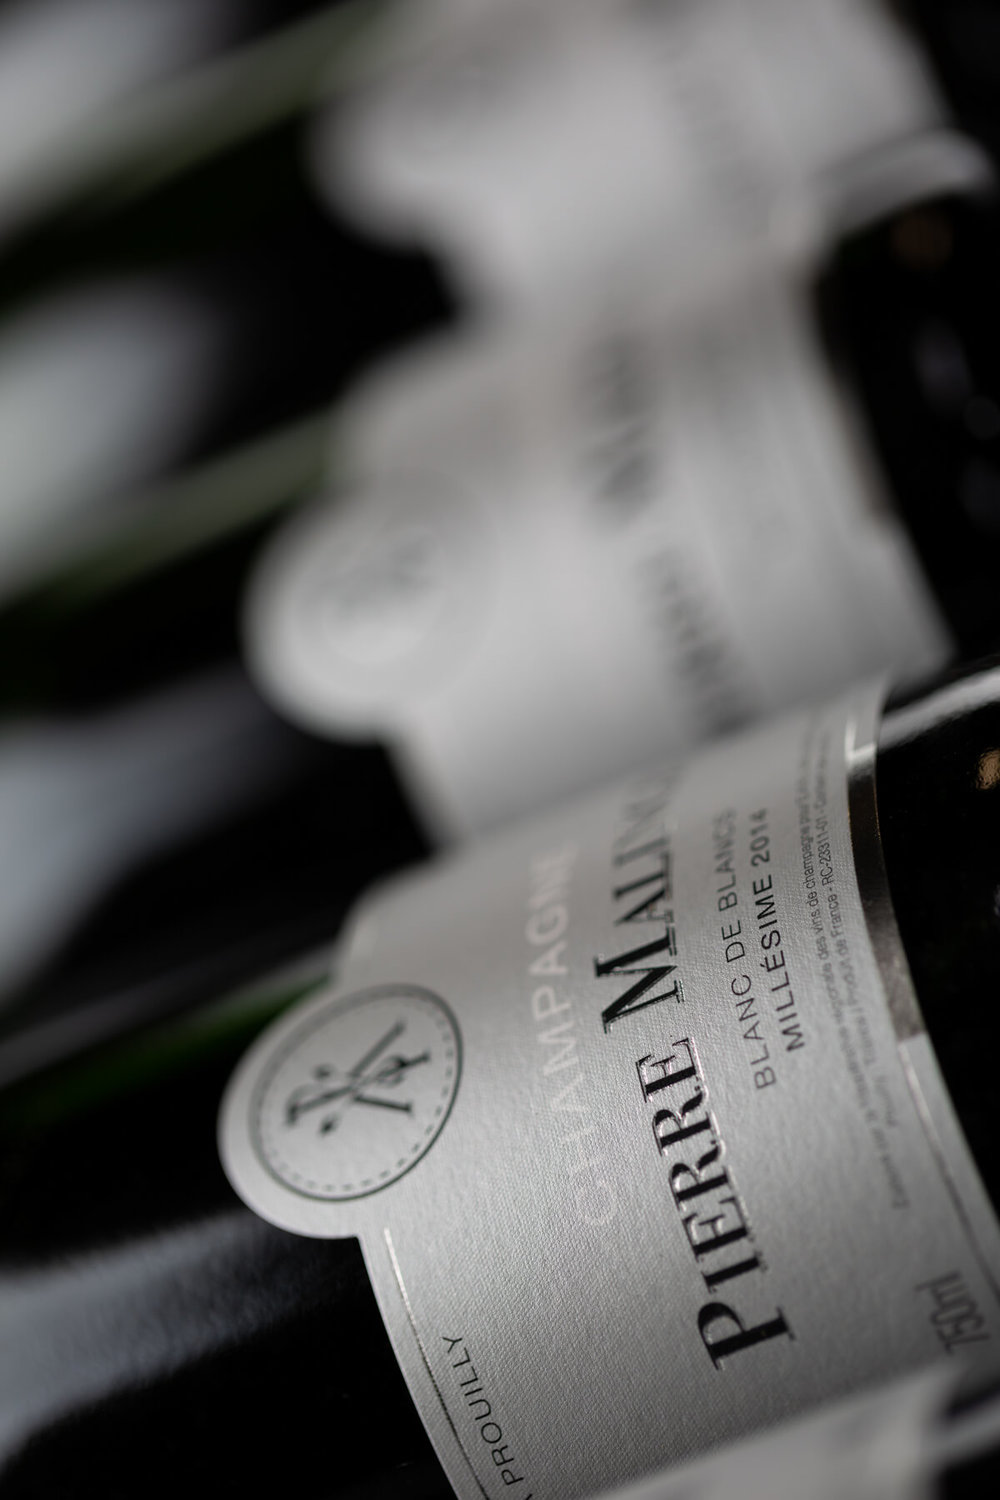 Photographe Champagne Epernay - Tristan Meunier - Champagne Malingre -7.jpg